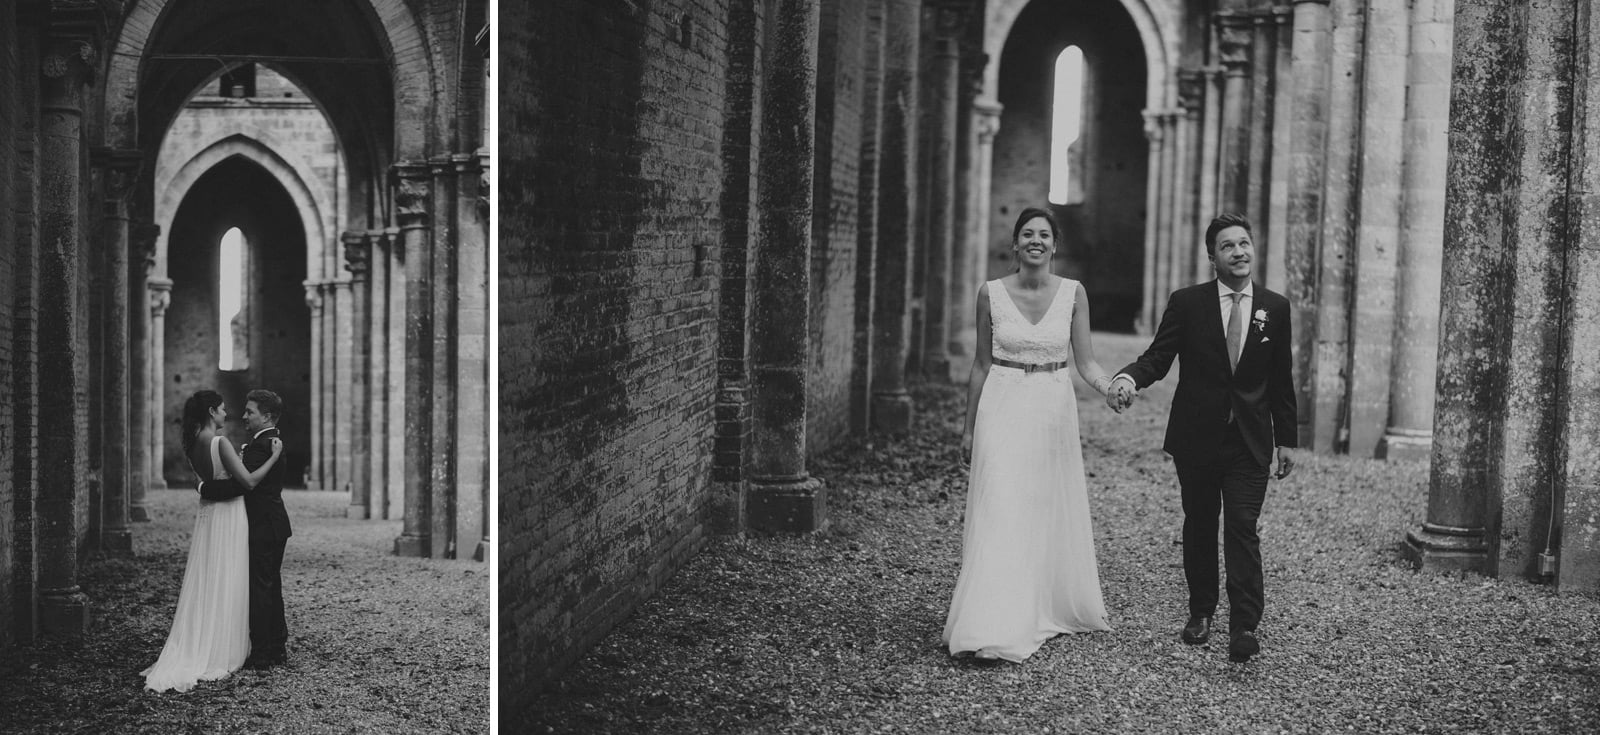 073-wedding-tuscany-san-galgano-siena-photographer